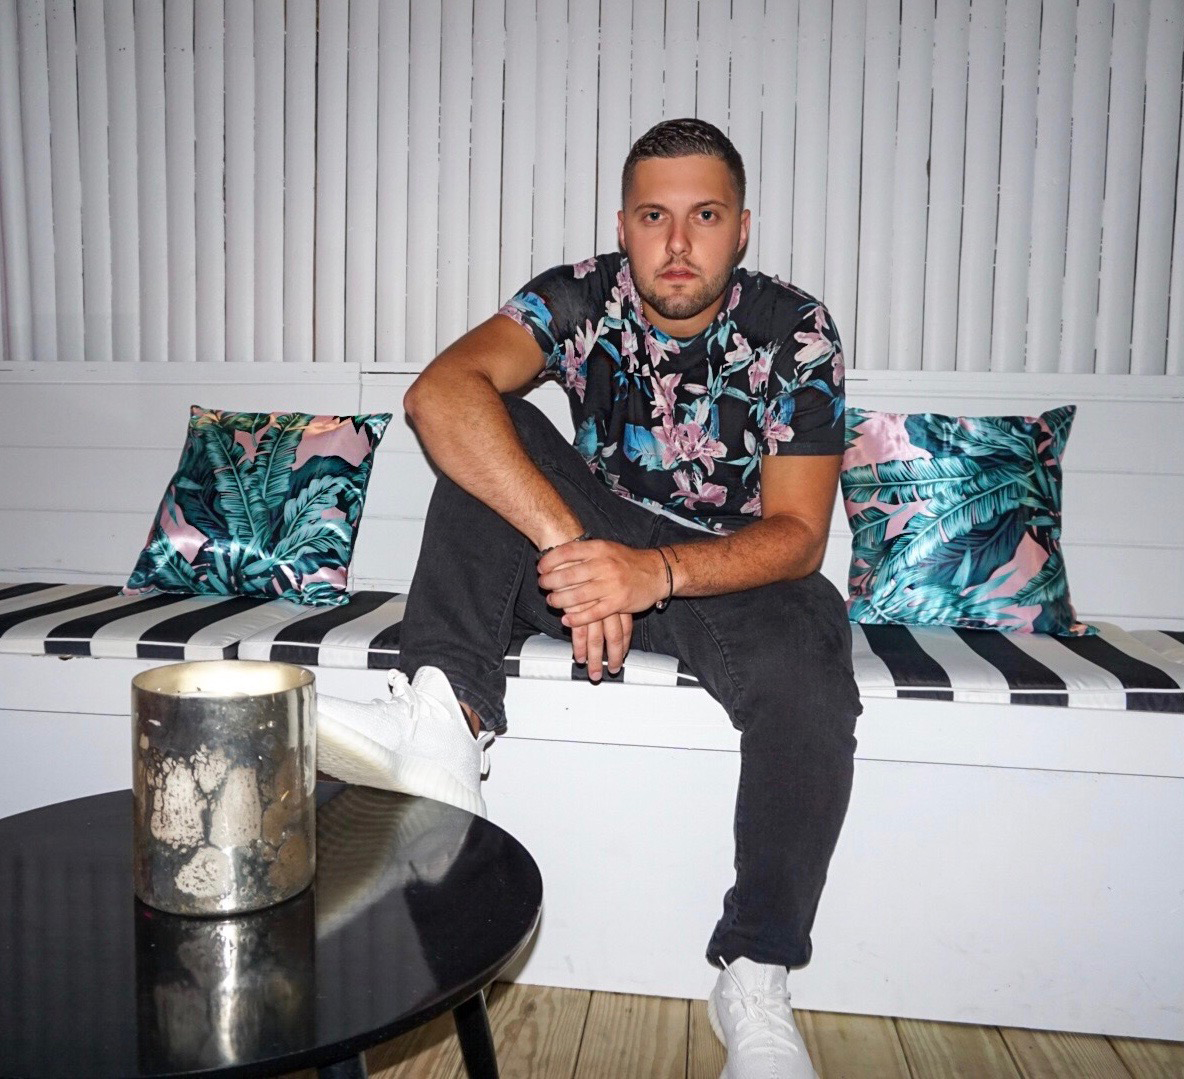 "New York native Nick Scalici has become one of the tri-state area's premiere DJs in nightlife, having played at elite venues including 1OAK, Up & Down, Marquee, Catch, and Avenue NY to name a few. He's performed for A-list celebrity artist including Travis Scott, G-Eazy, Chuckie, and other major talents. Growing up in the birthplace of turntablism and hiphop, Nick Scalici's passion for music is constantly recognized in his sets. His hard work and determination has excelled him in the game, making him a huge target on the radar at such a young age. His weekly playlist titled ""Fridays Heat"", featured on Apple Music, keeps his listeners always up to date with all of musics hottest (or latest) hits. His hi-energy and quick ""power"" mixing is known to be what separates him from the rest giving club and partygoers the perfect music experience."